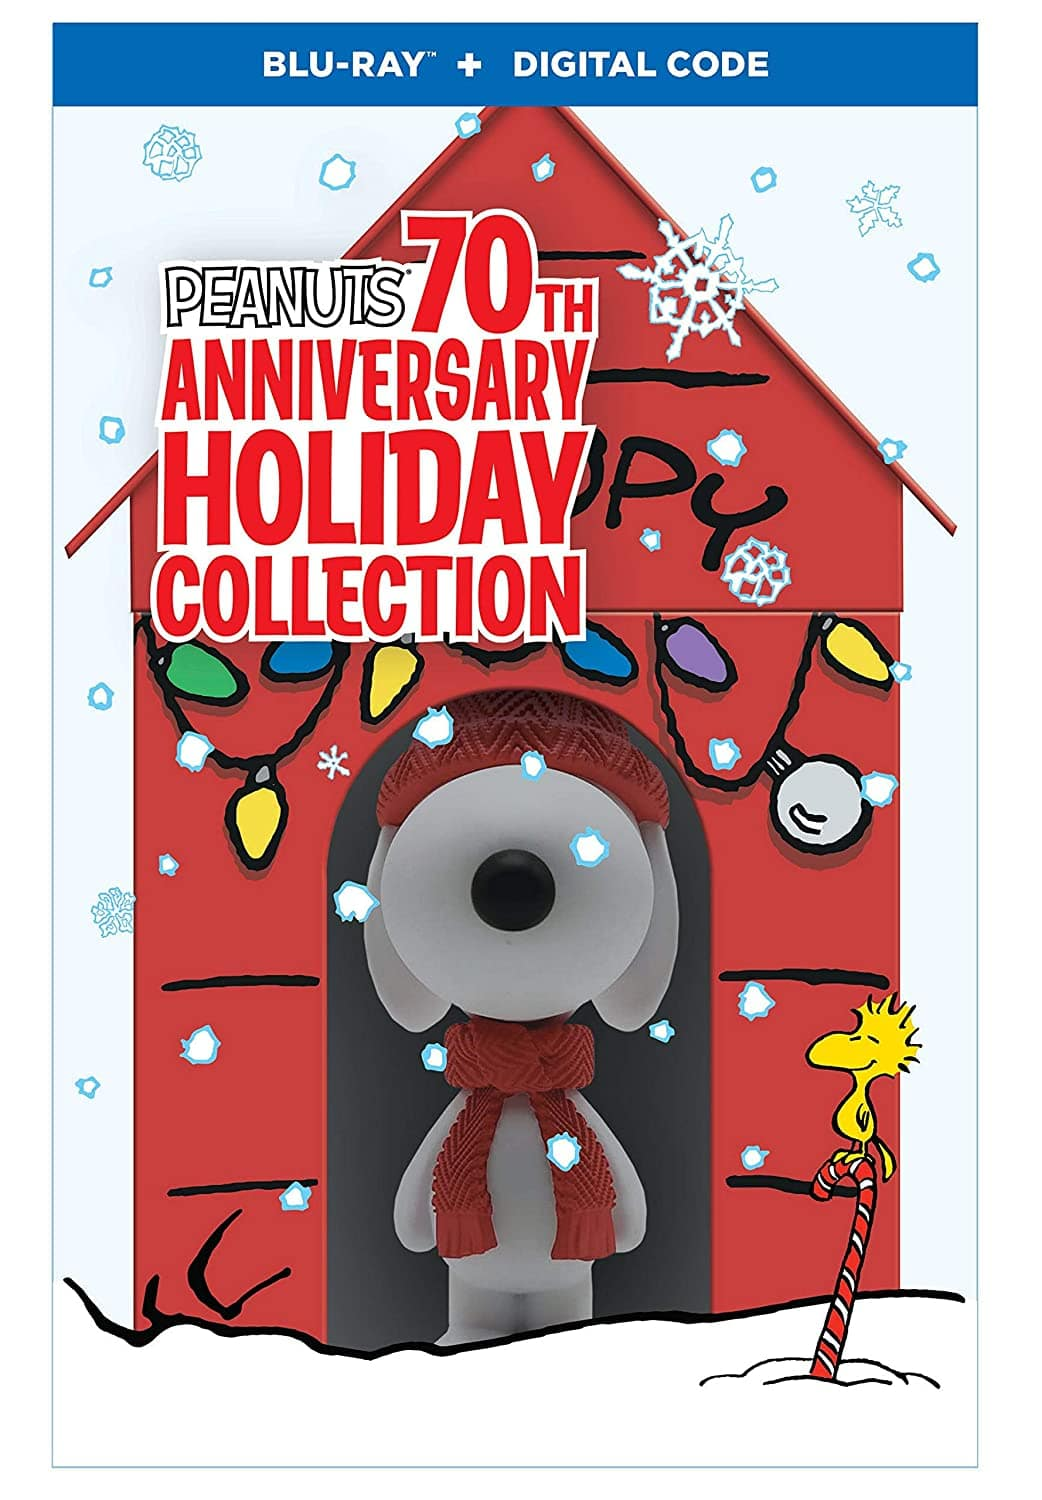 Peanuts: 70th Anniversary Holiday Limited Edition Collection (Blu-Ray + Digital Code) $39.99 + Free Shipping via Amazon